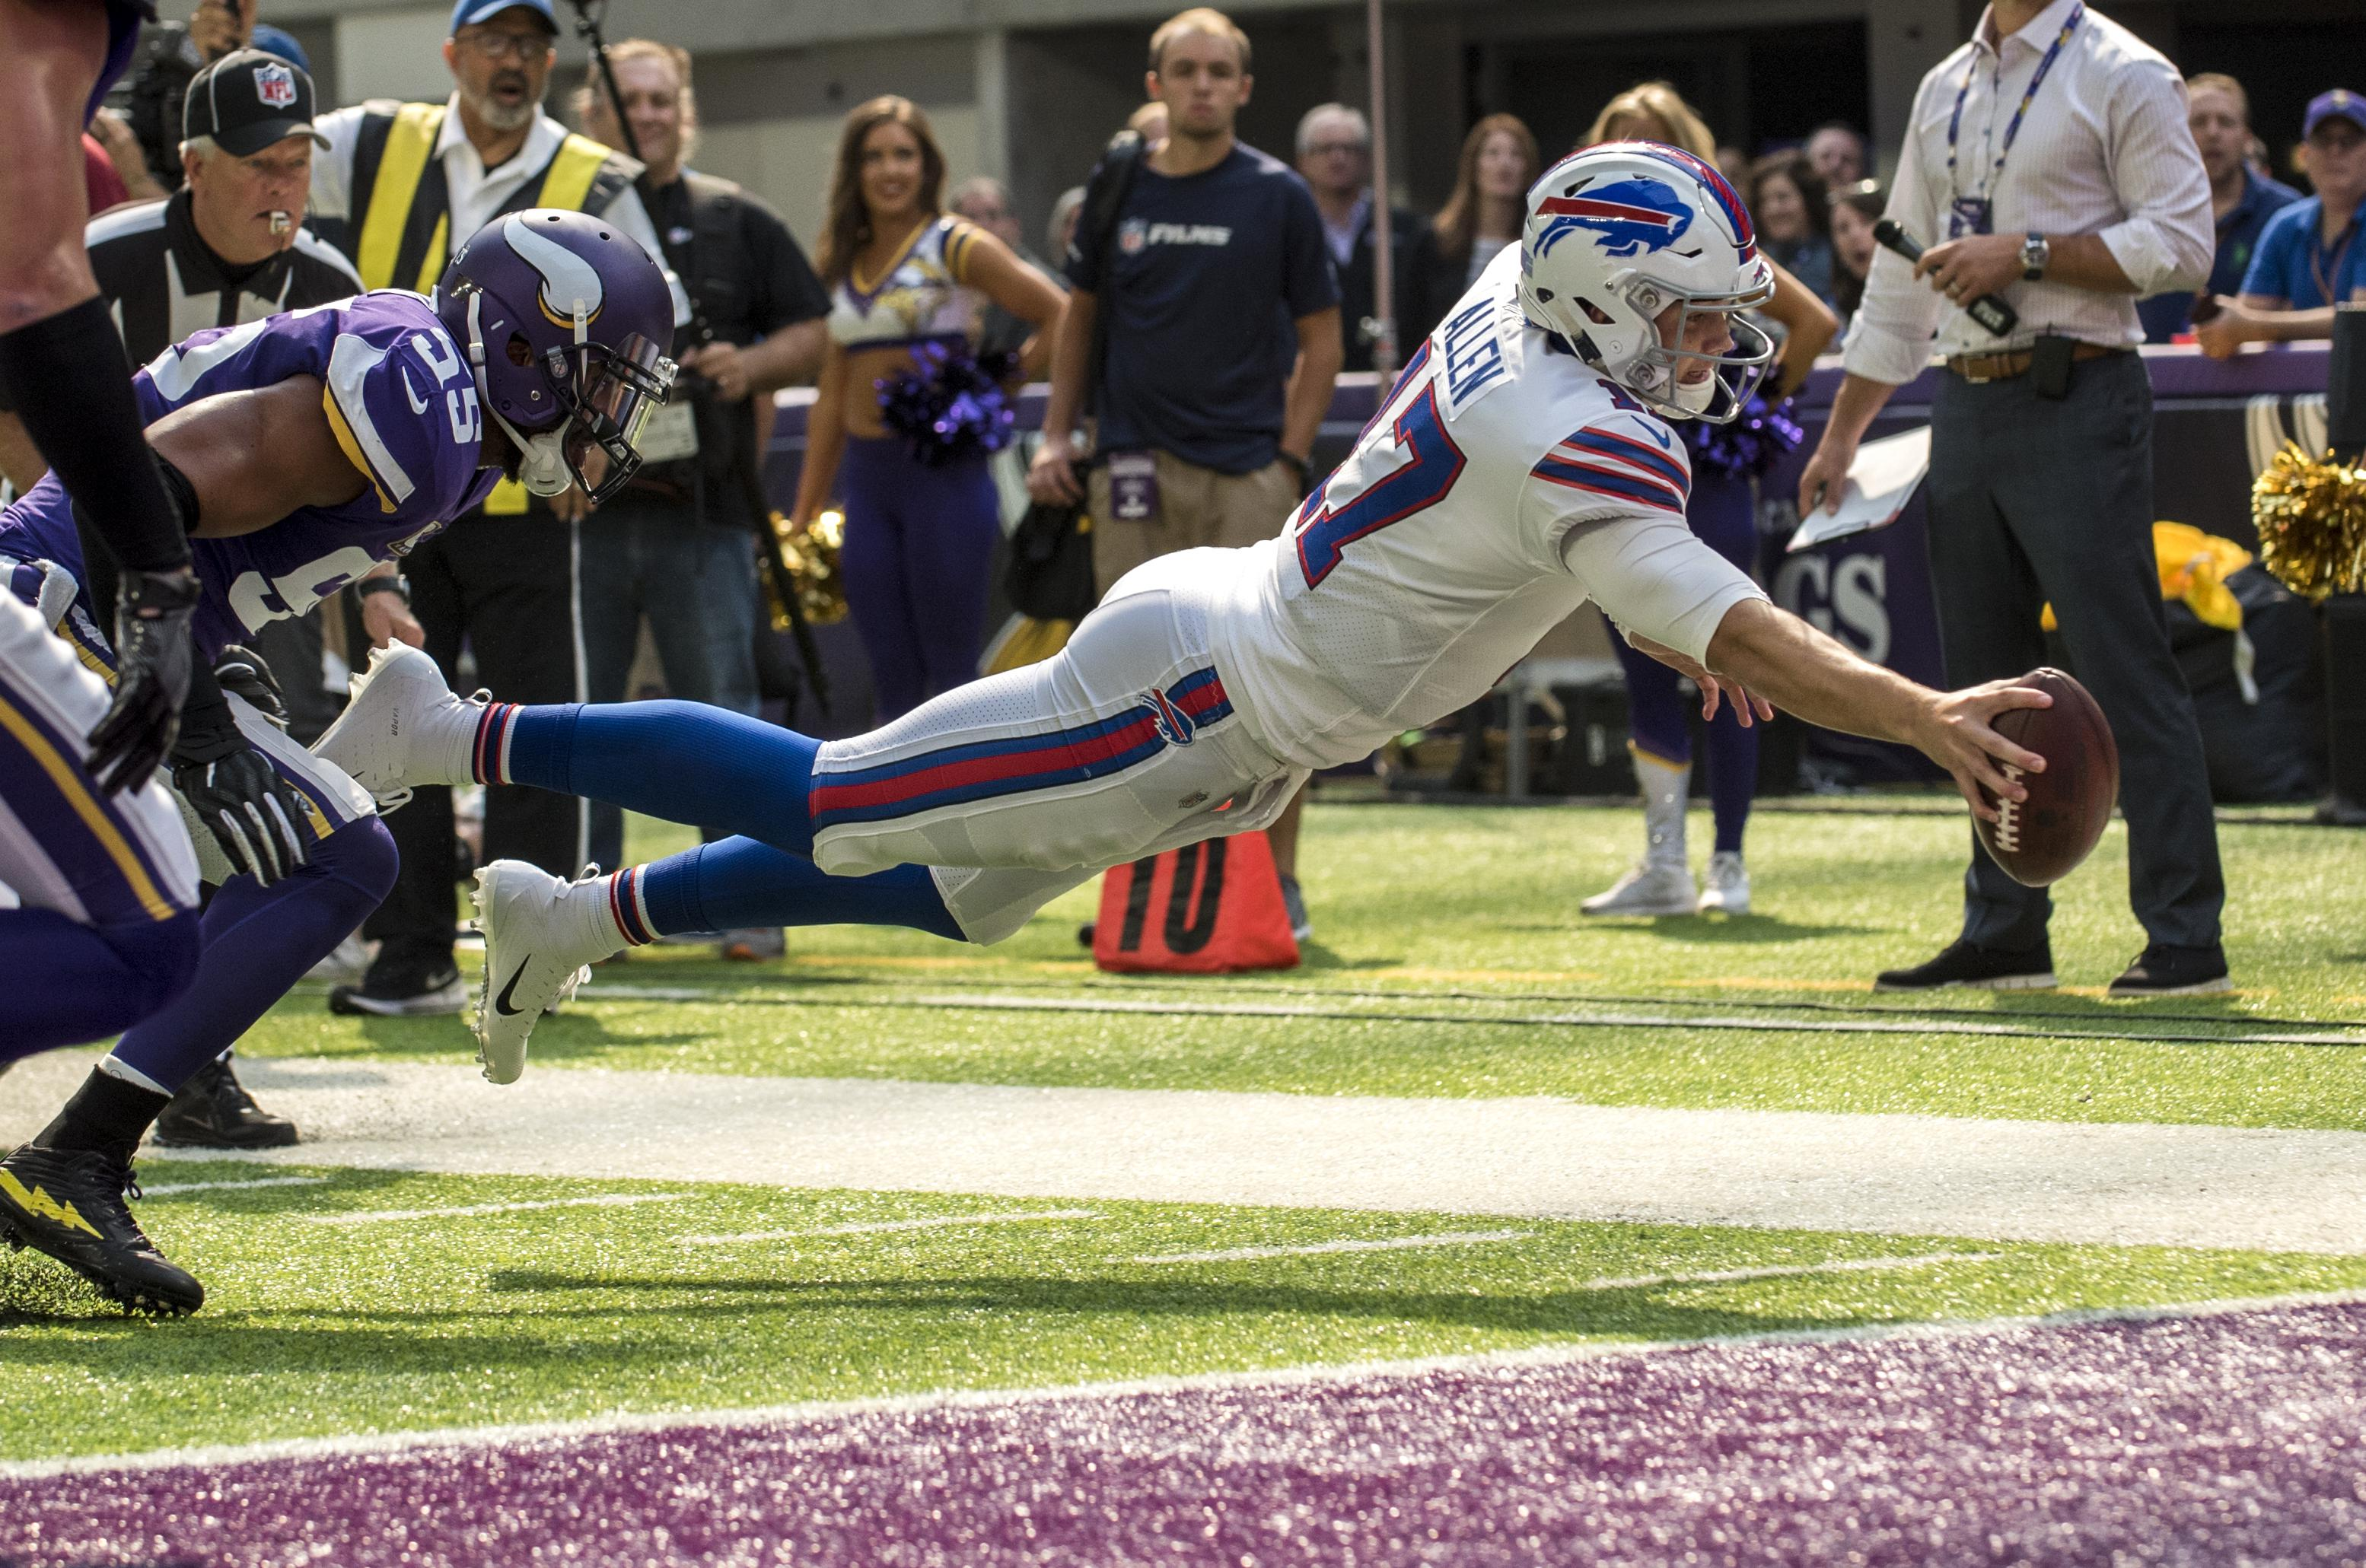 slate.com - Nick Greene - Josh Allen Is Hurdling Dudes and the Buffalo Bills are Going to Win the Super Bowl This Year